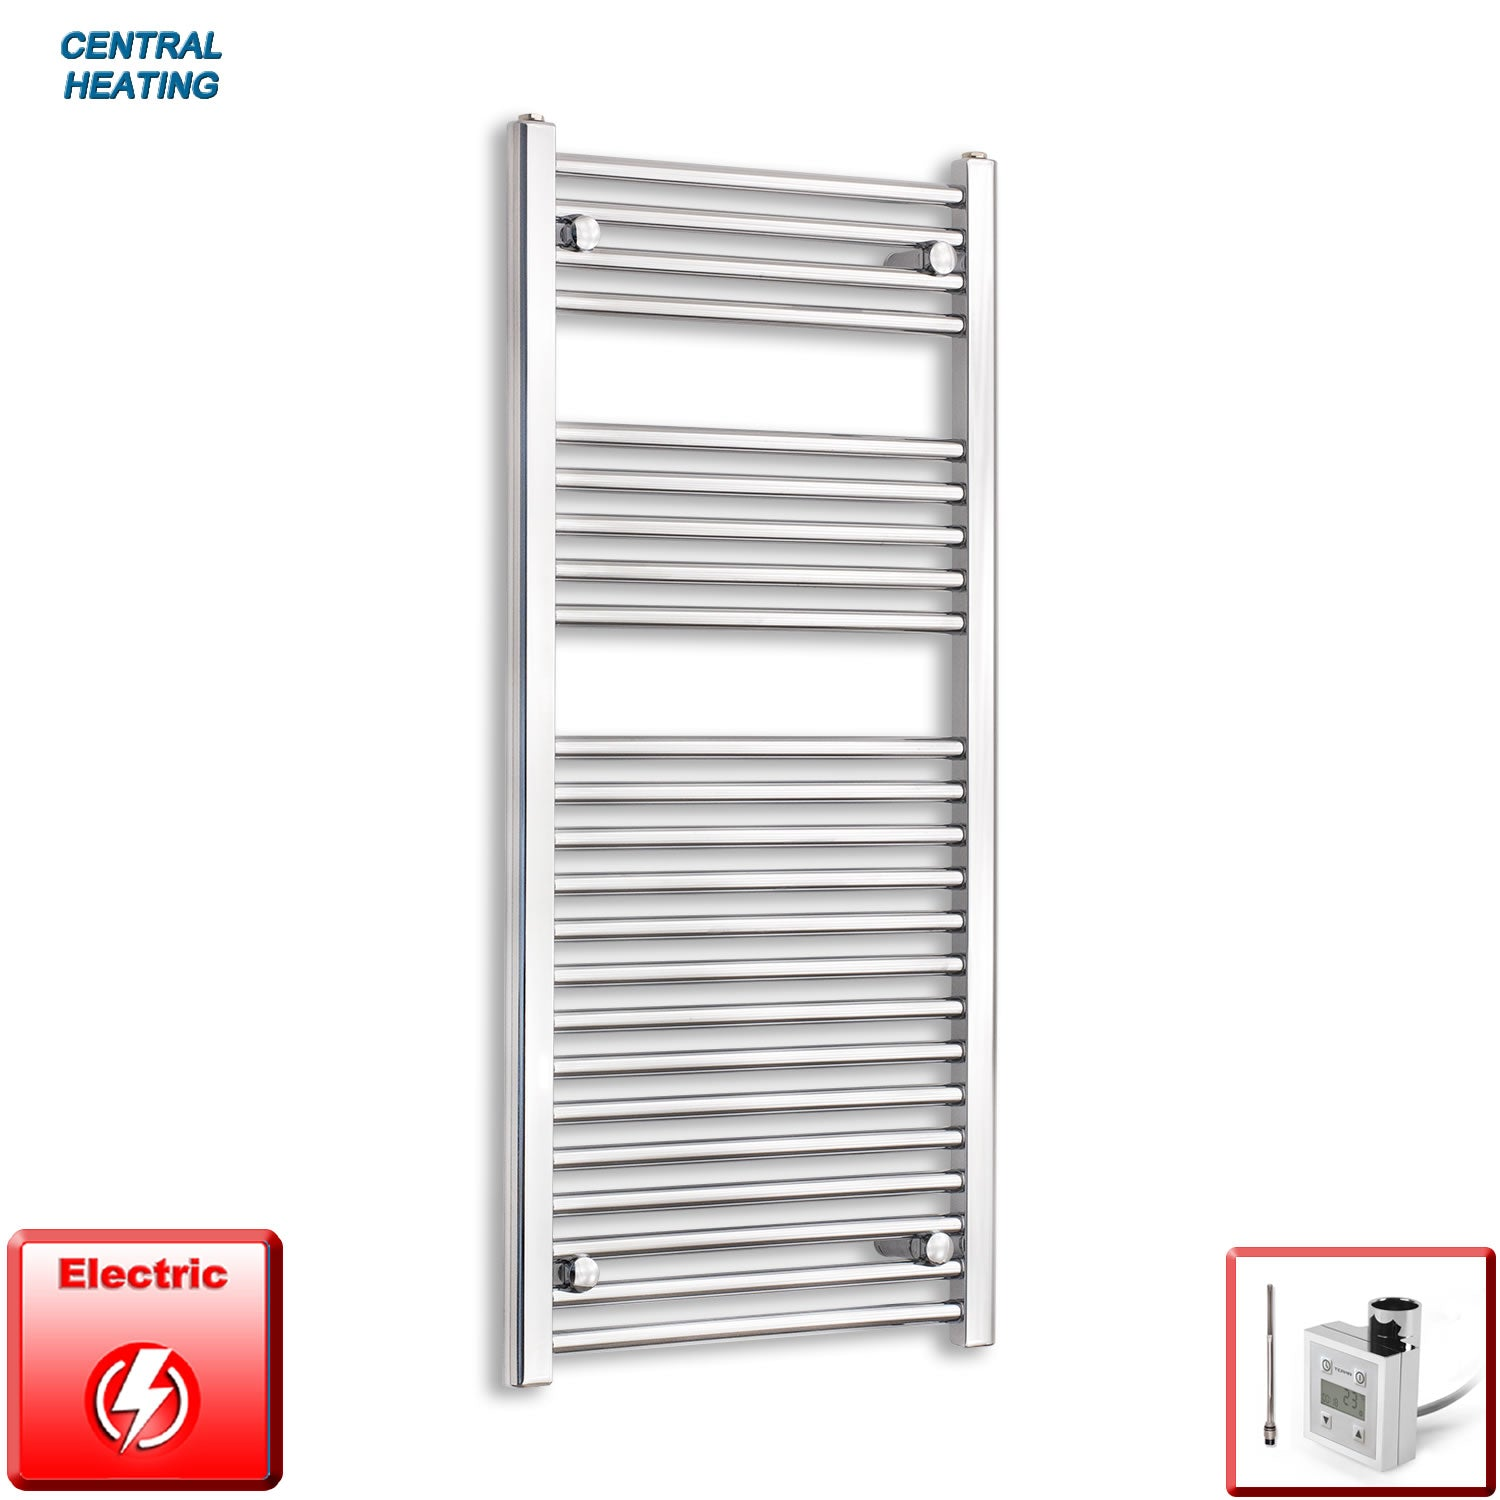 500mm Wide 1100mm High Pre-Filled Black Electric Towel Rail Radiator With Thermostatic KTX3 Element